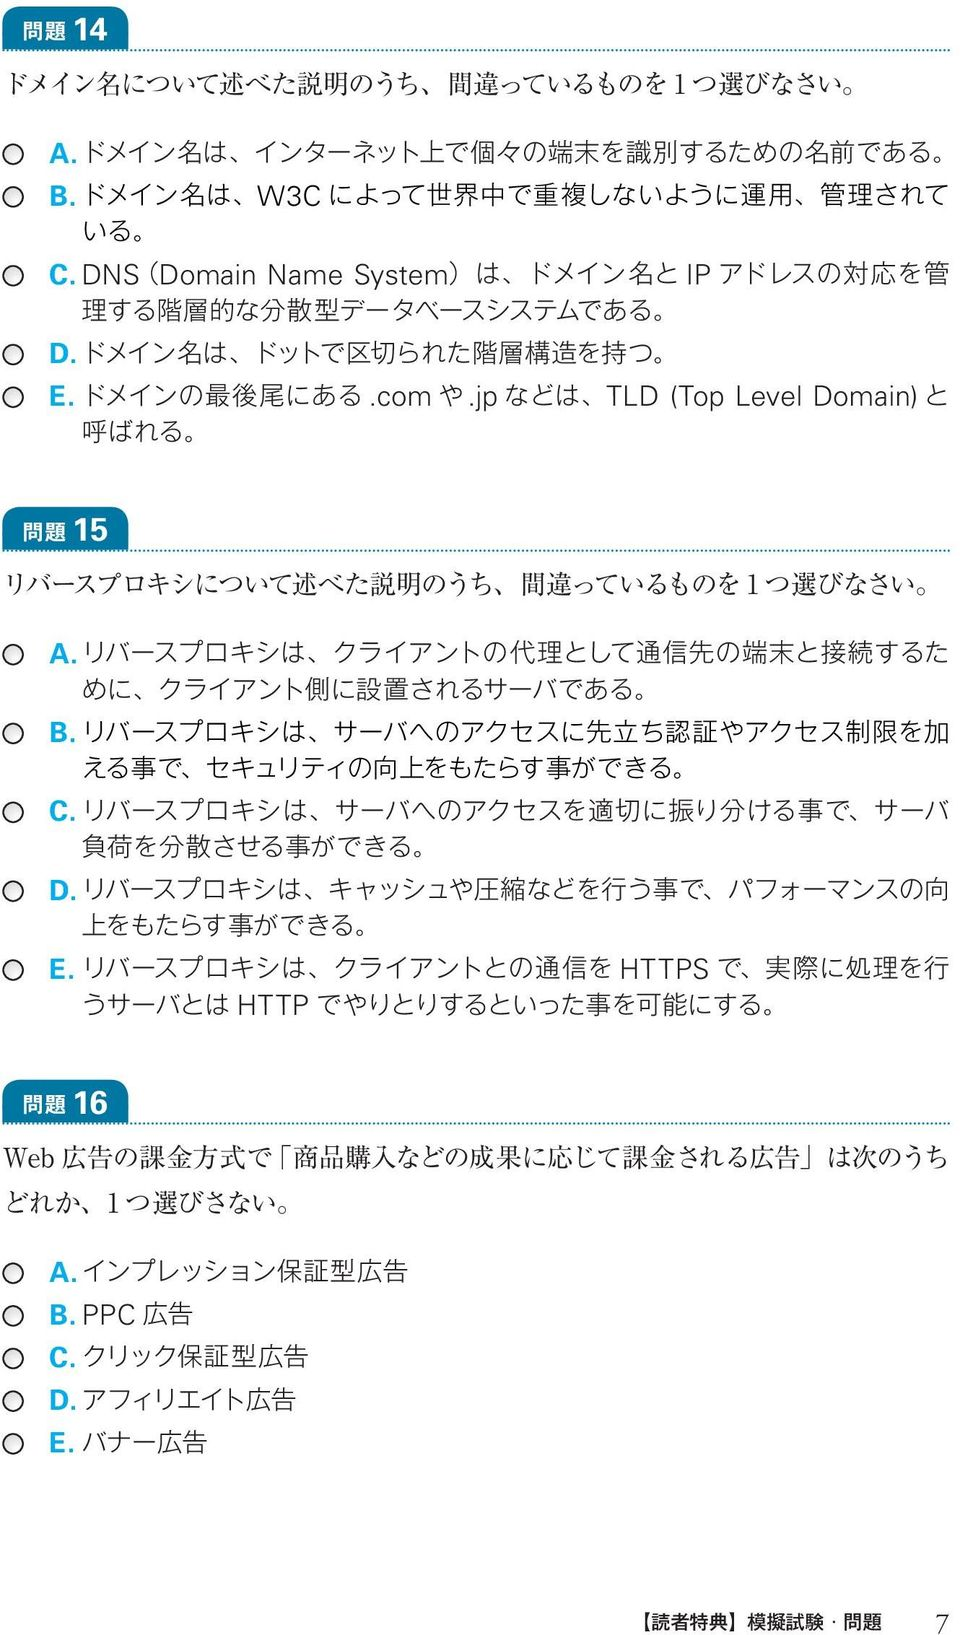 .com.jp TLD (Top Level Domain)